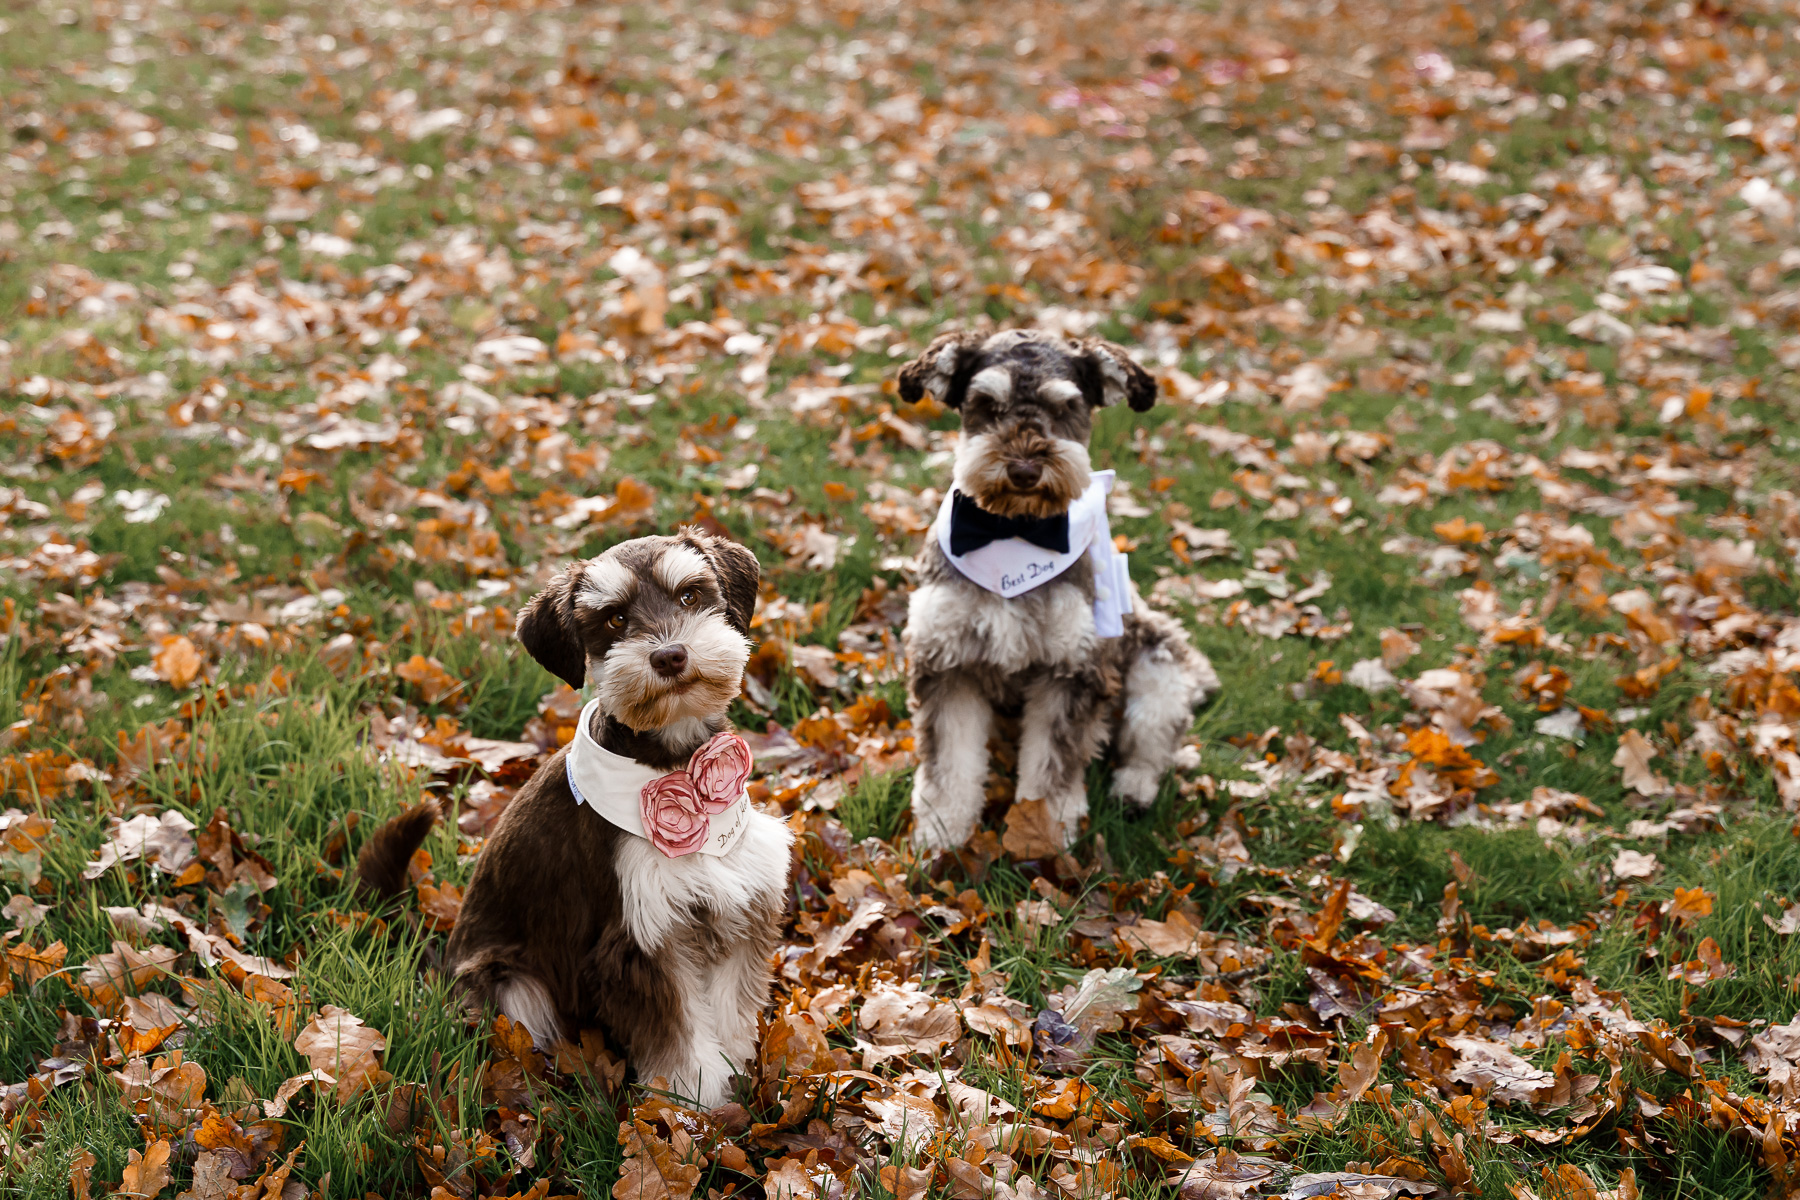 dog friendly wedding- dogs at weddings- katherine and her camera- dog wedding accessories-unconventional wedding- wedding planning advice- dog friendly photographer